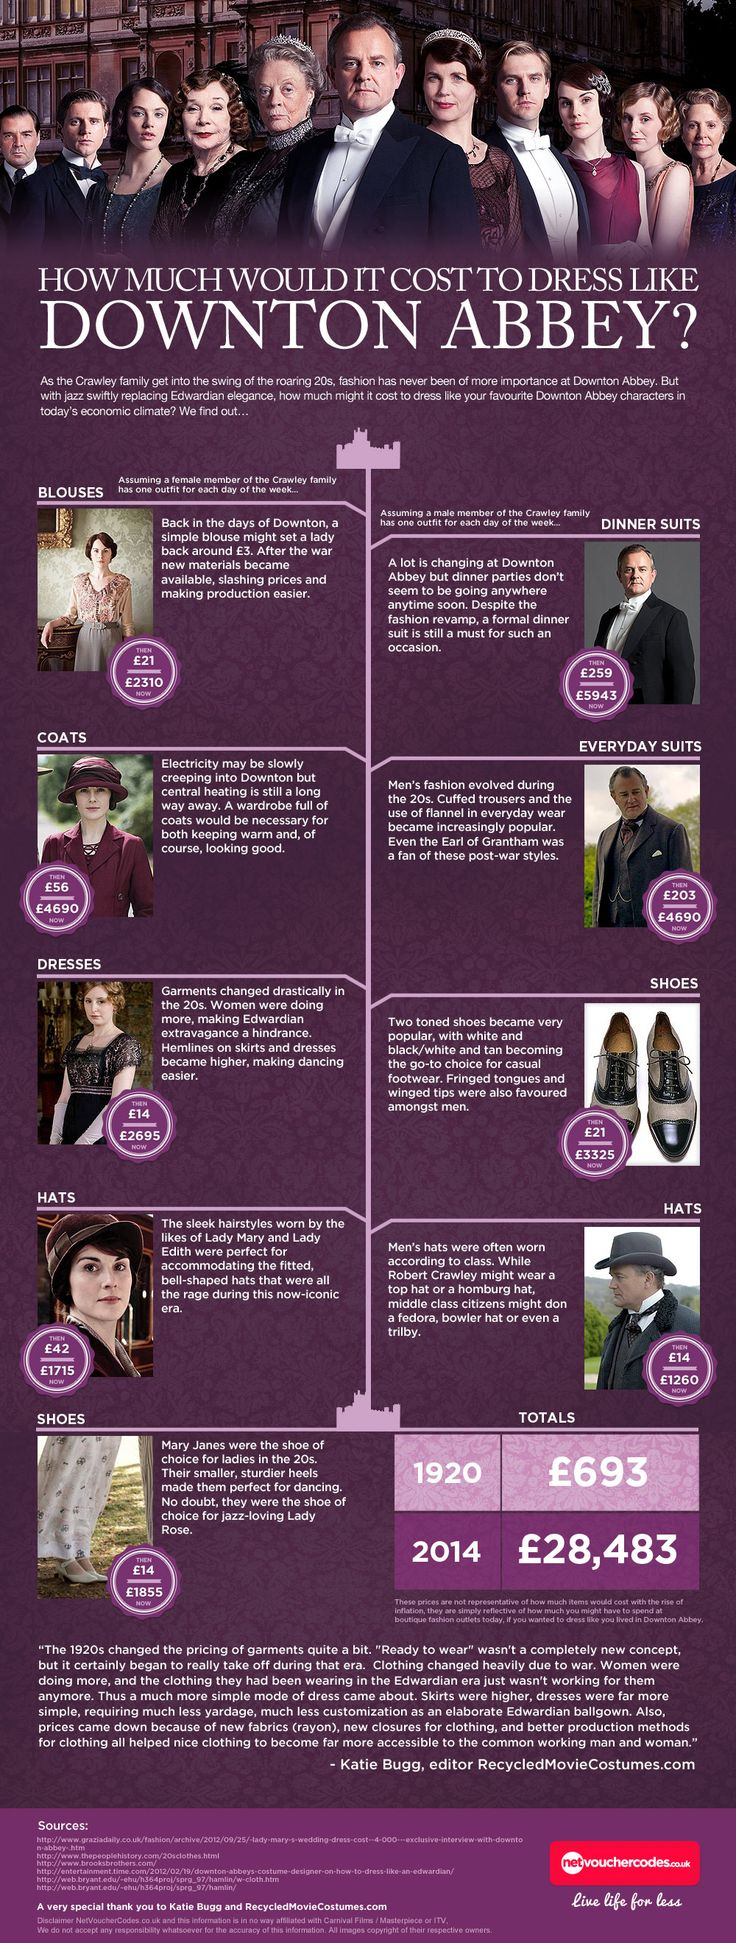 Downton Abbey: Dressing like a Crawley is an expensive business